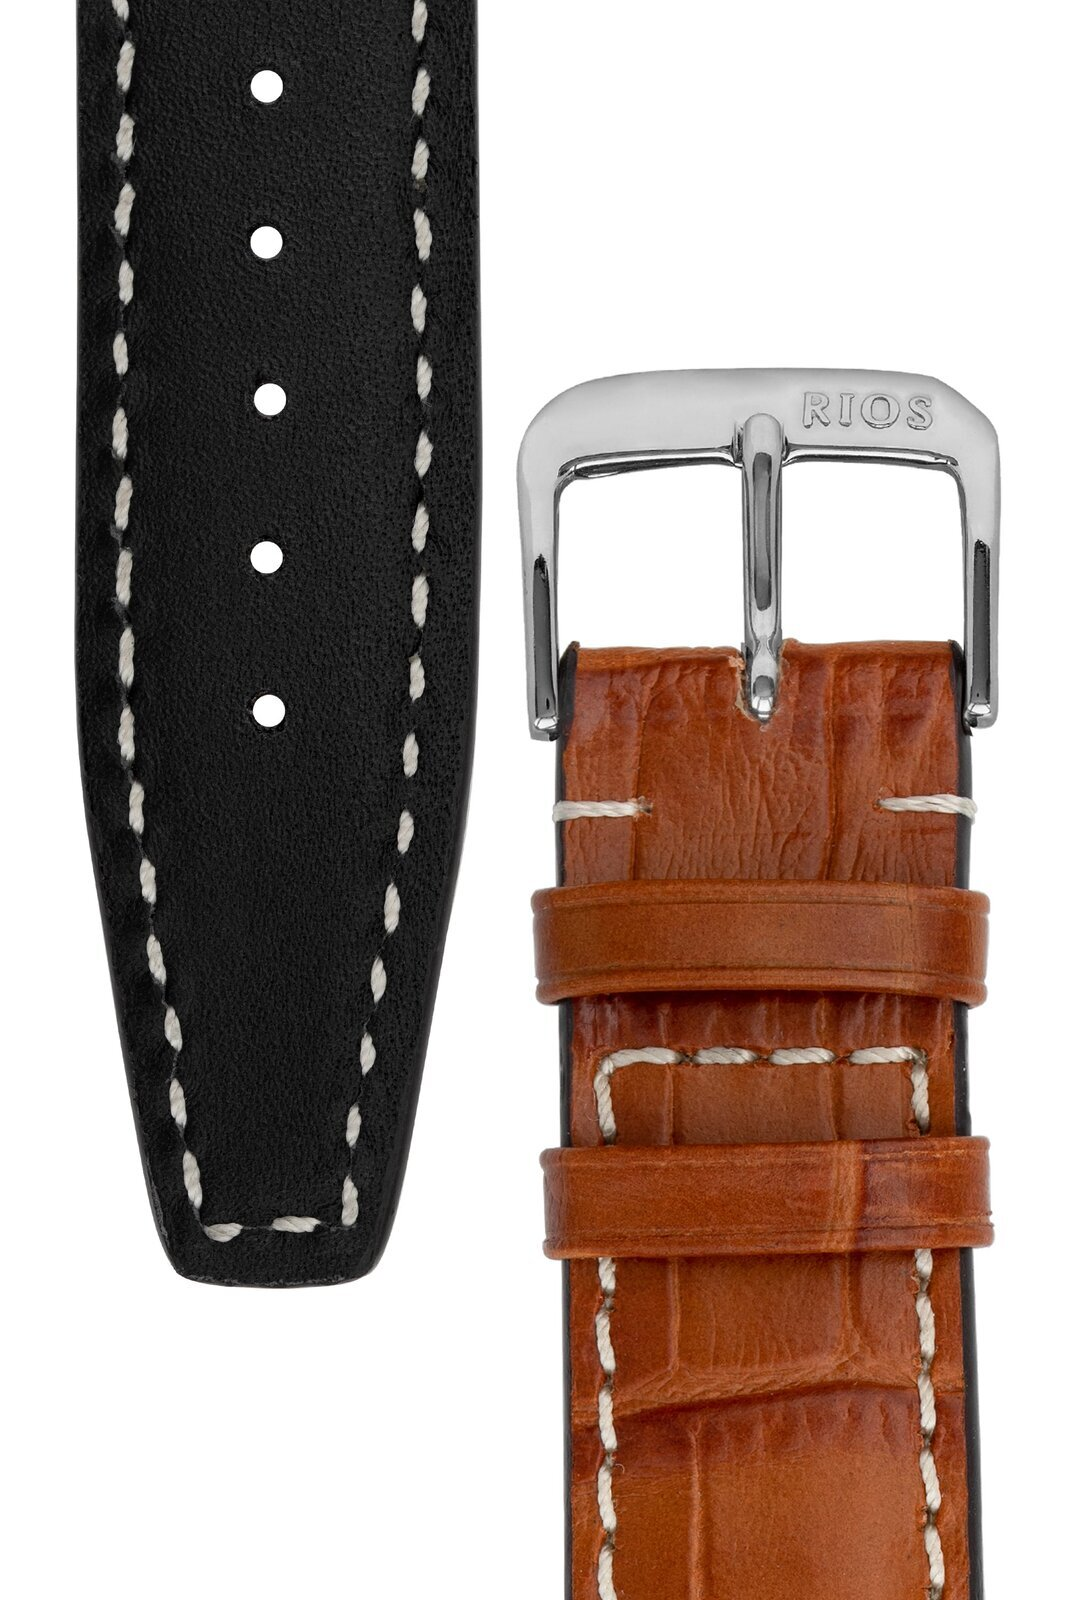 18mm Rios1931 BOSTON Alligator-Embossed Leather Watch Strap in COGNAC